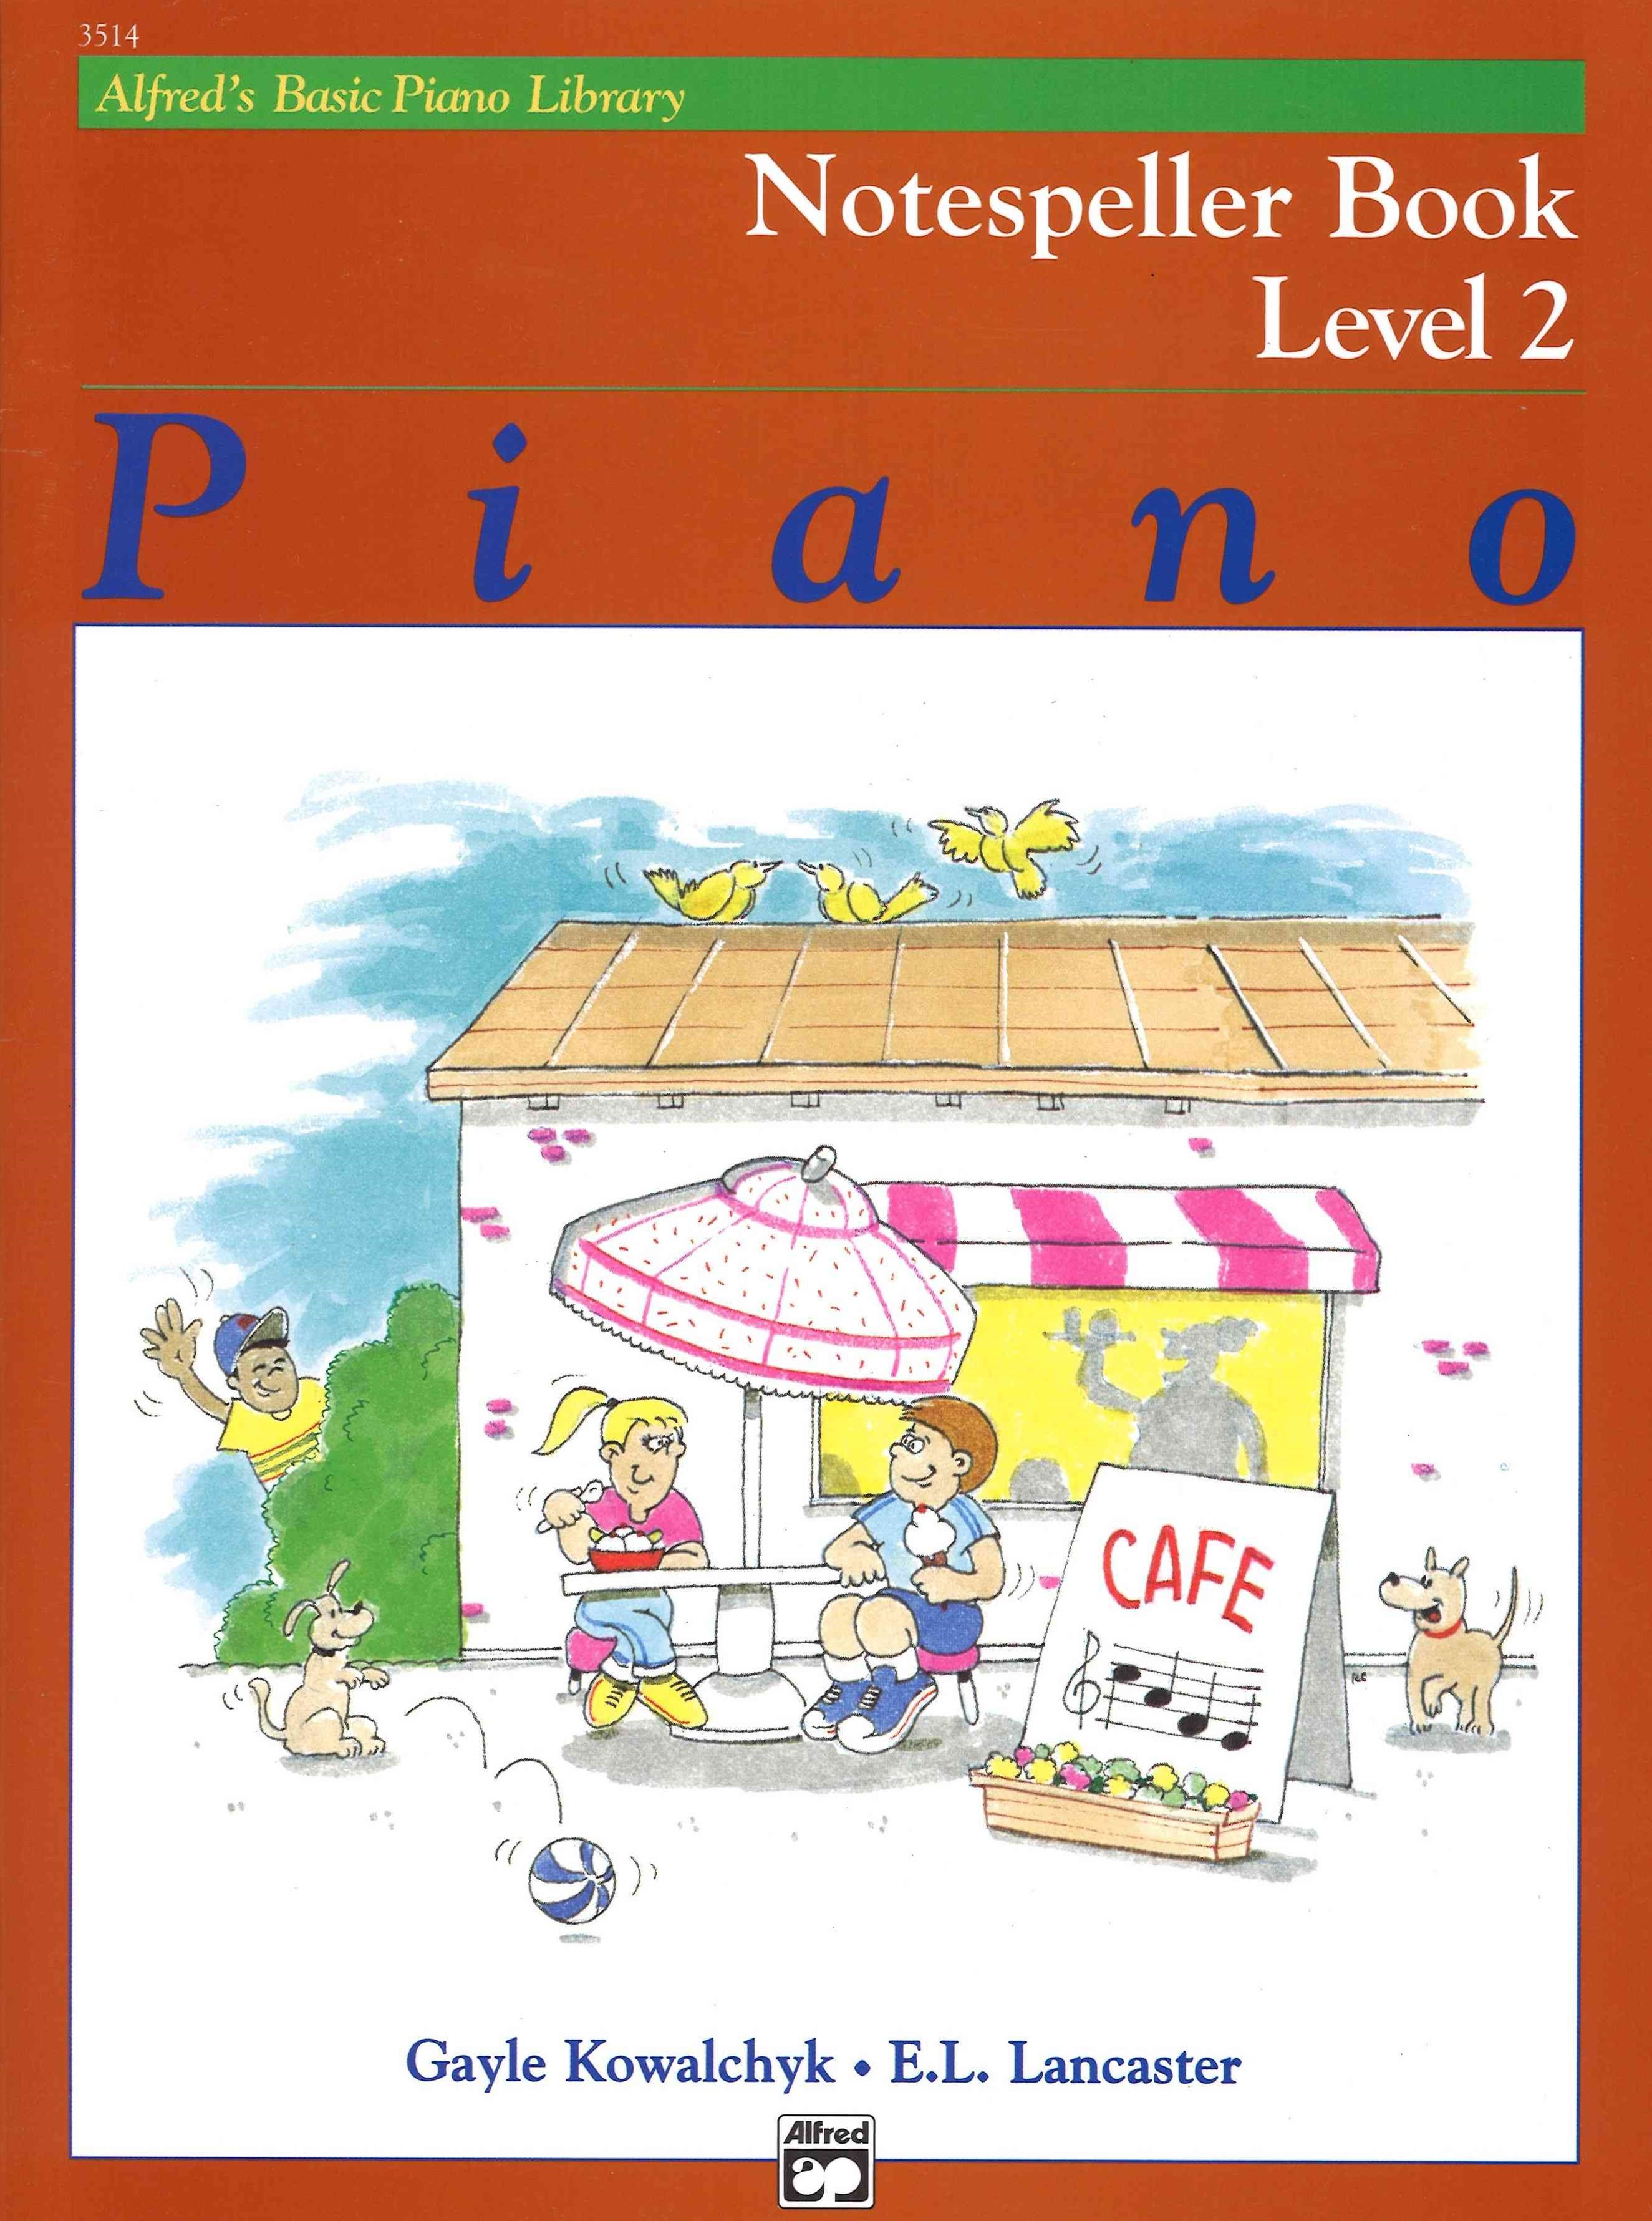 Alfred's Basic Piano Course - Notespeller Book